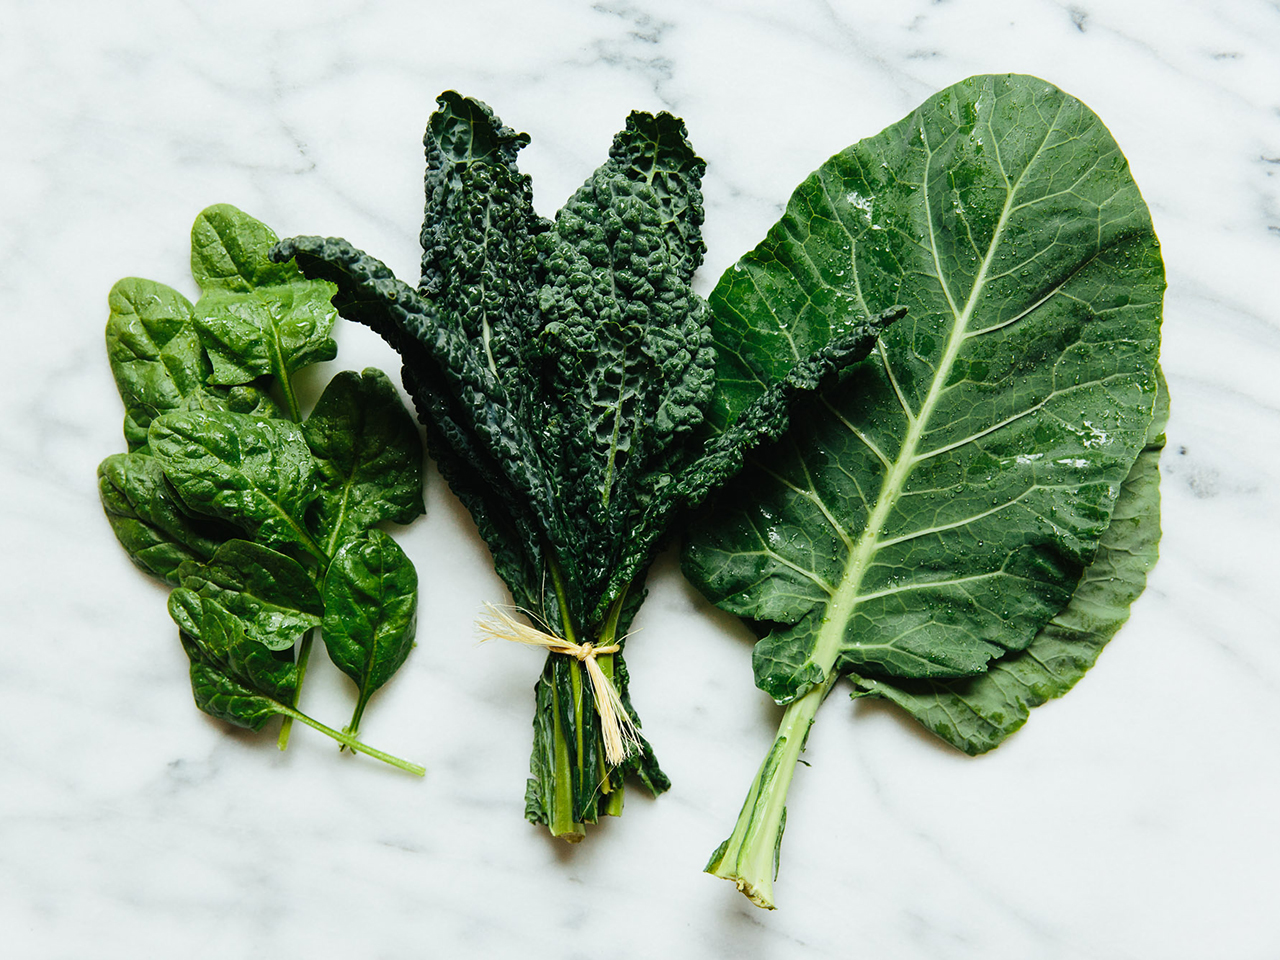 Vitamin K is known for its role in blood coagulation and clotting and is linked to a decreased risk of heart disease, but recent research has also revealed it plays an important role in helping our bodies absorb calcium. Find it in vegetables like kale, collards, and spinach.Those leafy greens also contain magnesium, a mineral also involved in calcium absorption as well as nerve and brain function.